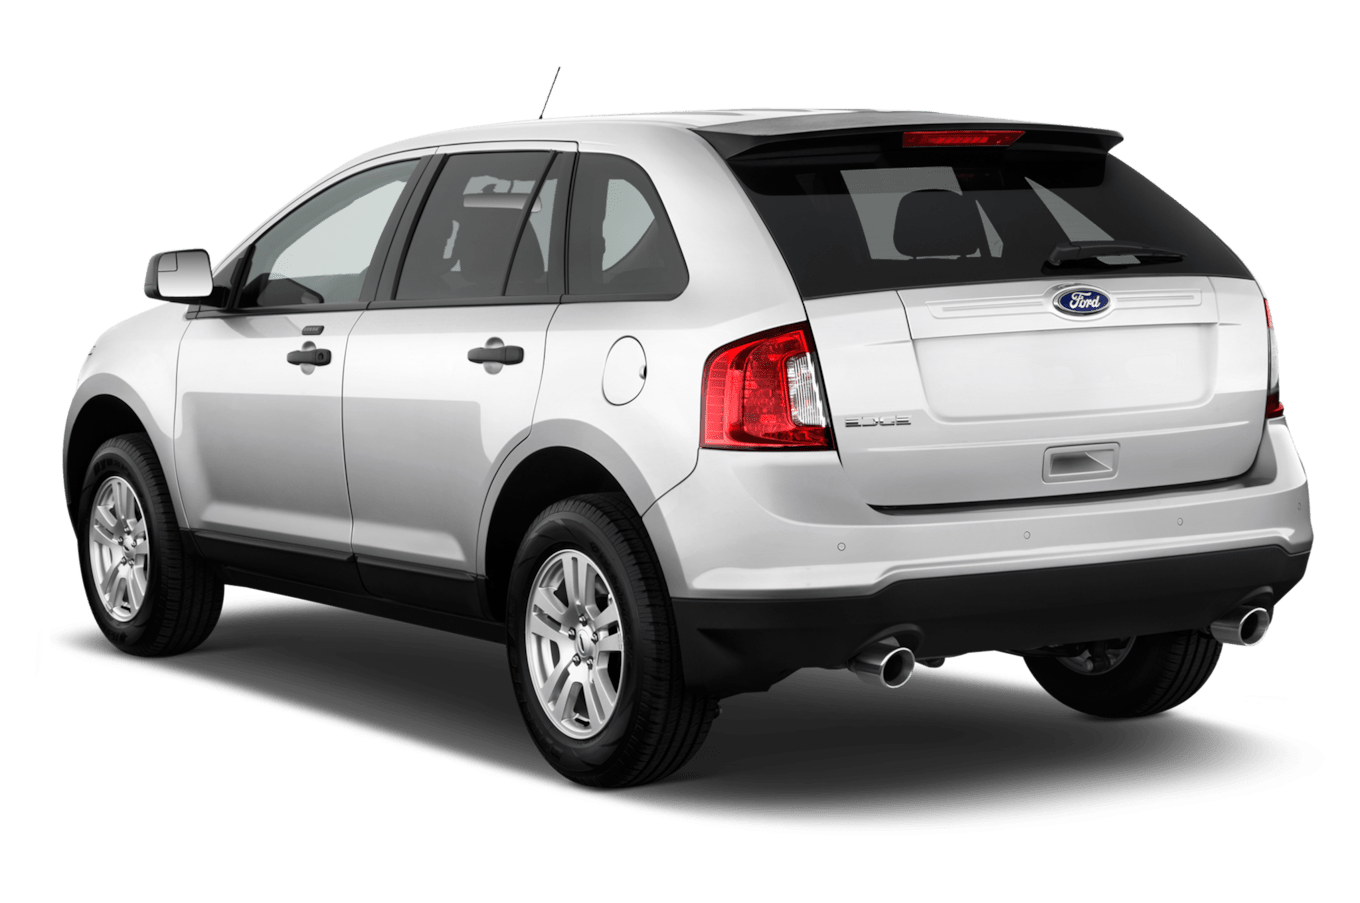 2013 Ford Edge Fuse Diagram Free Download Wiring Diagrams Pictures